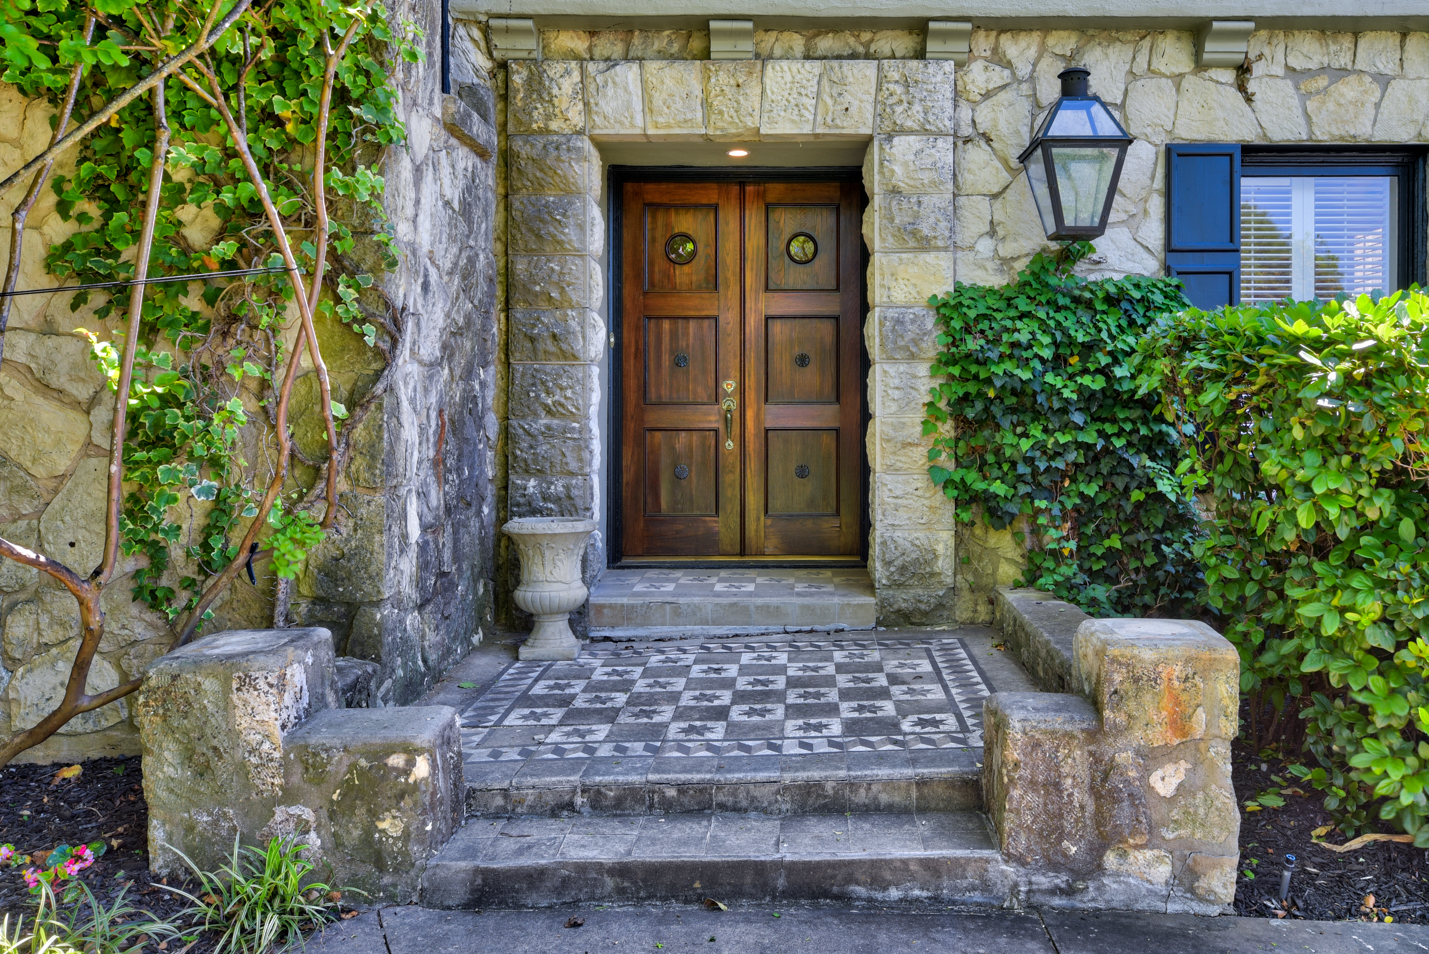 Selecting a Realtor? Ask These 8 Key Questions